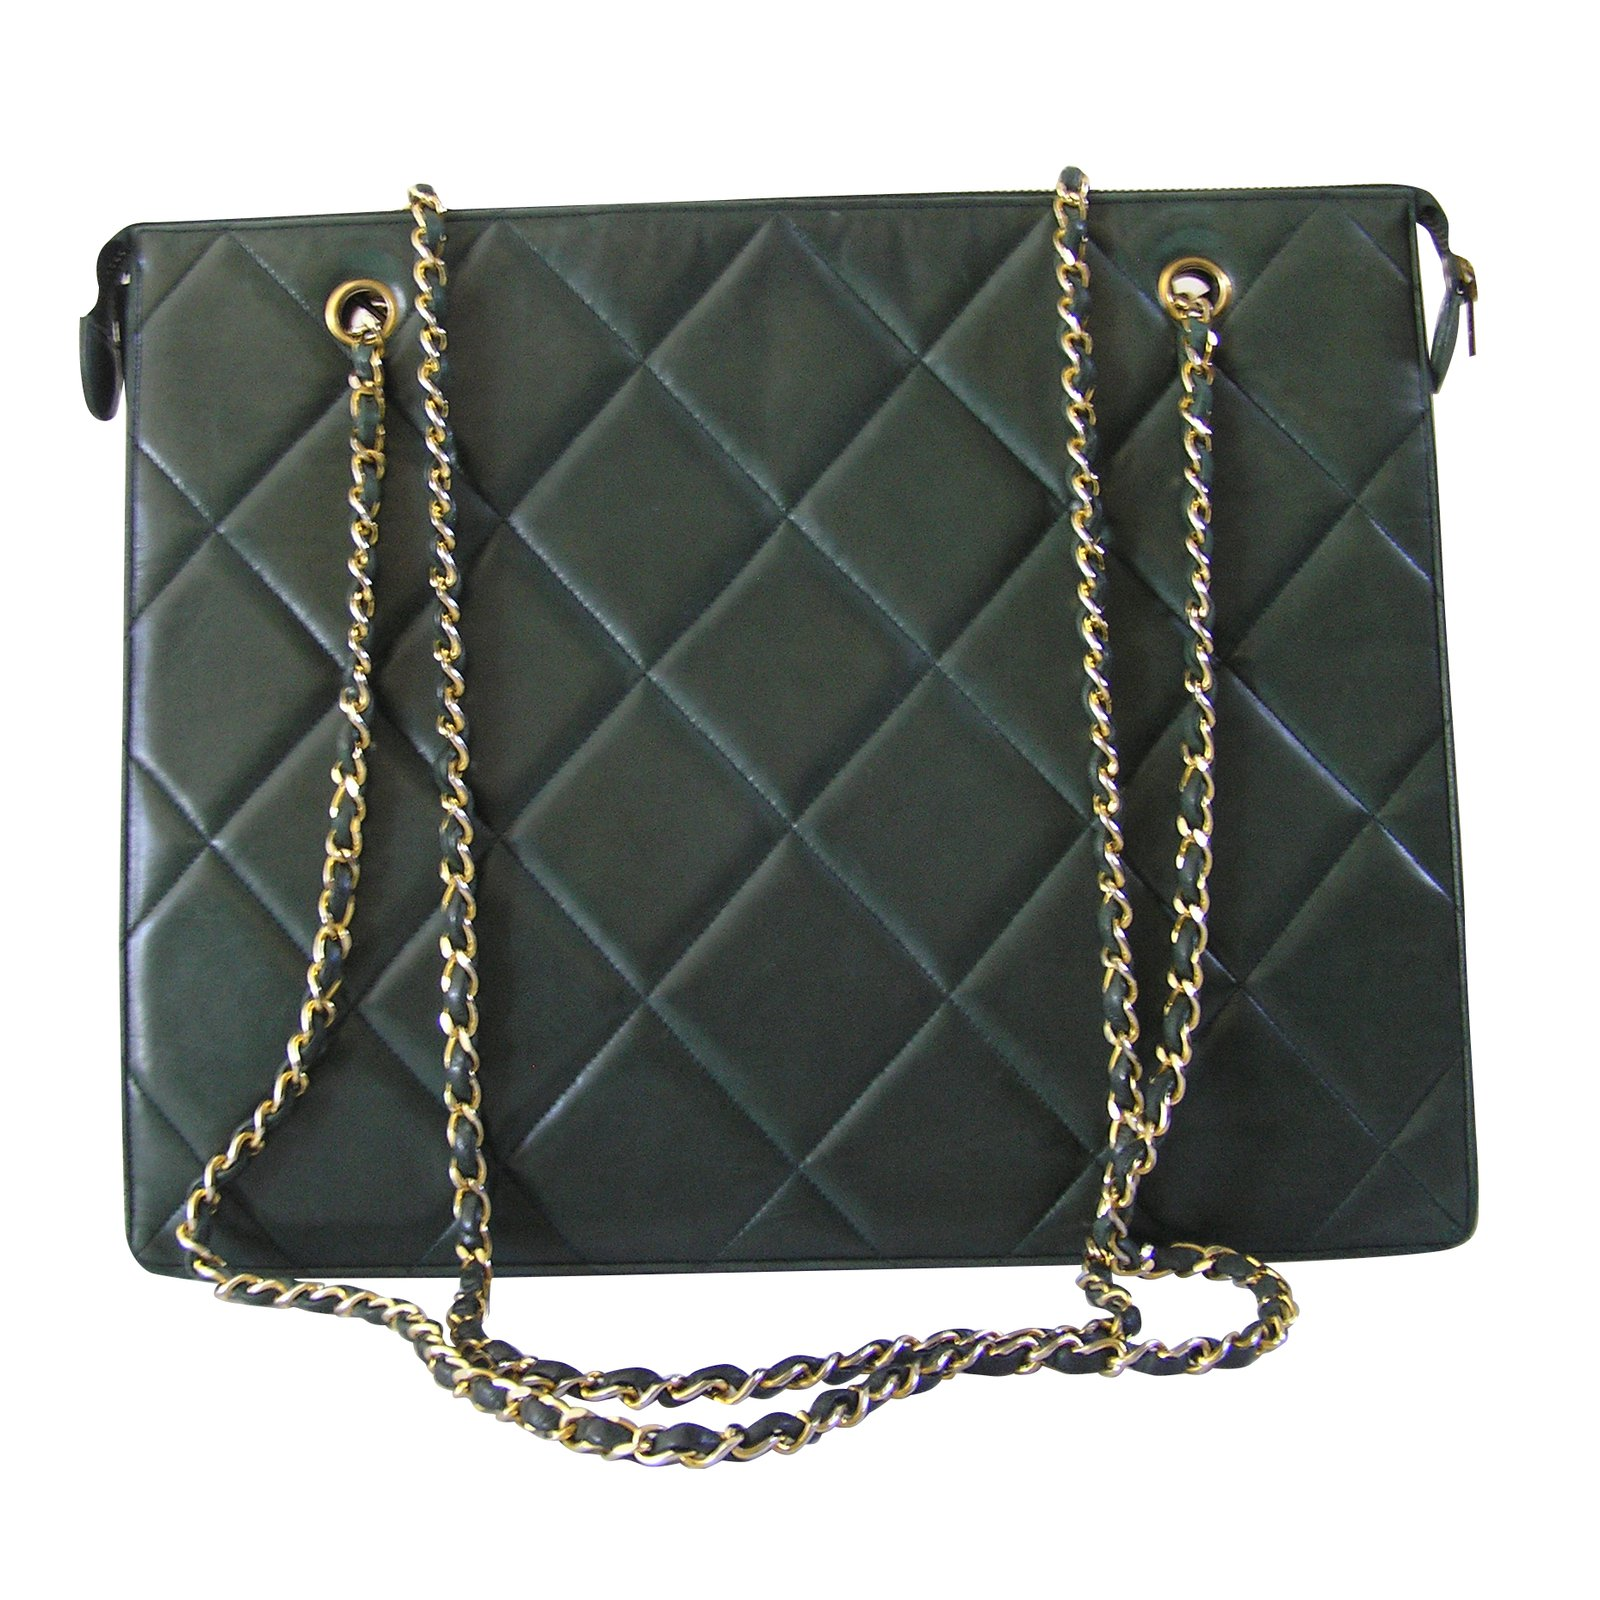 39b9b84d99b4b7 Chanel Handbags Handbags Leather Green ref.58061 - Joli Closet